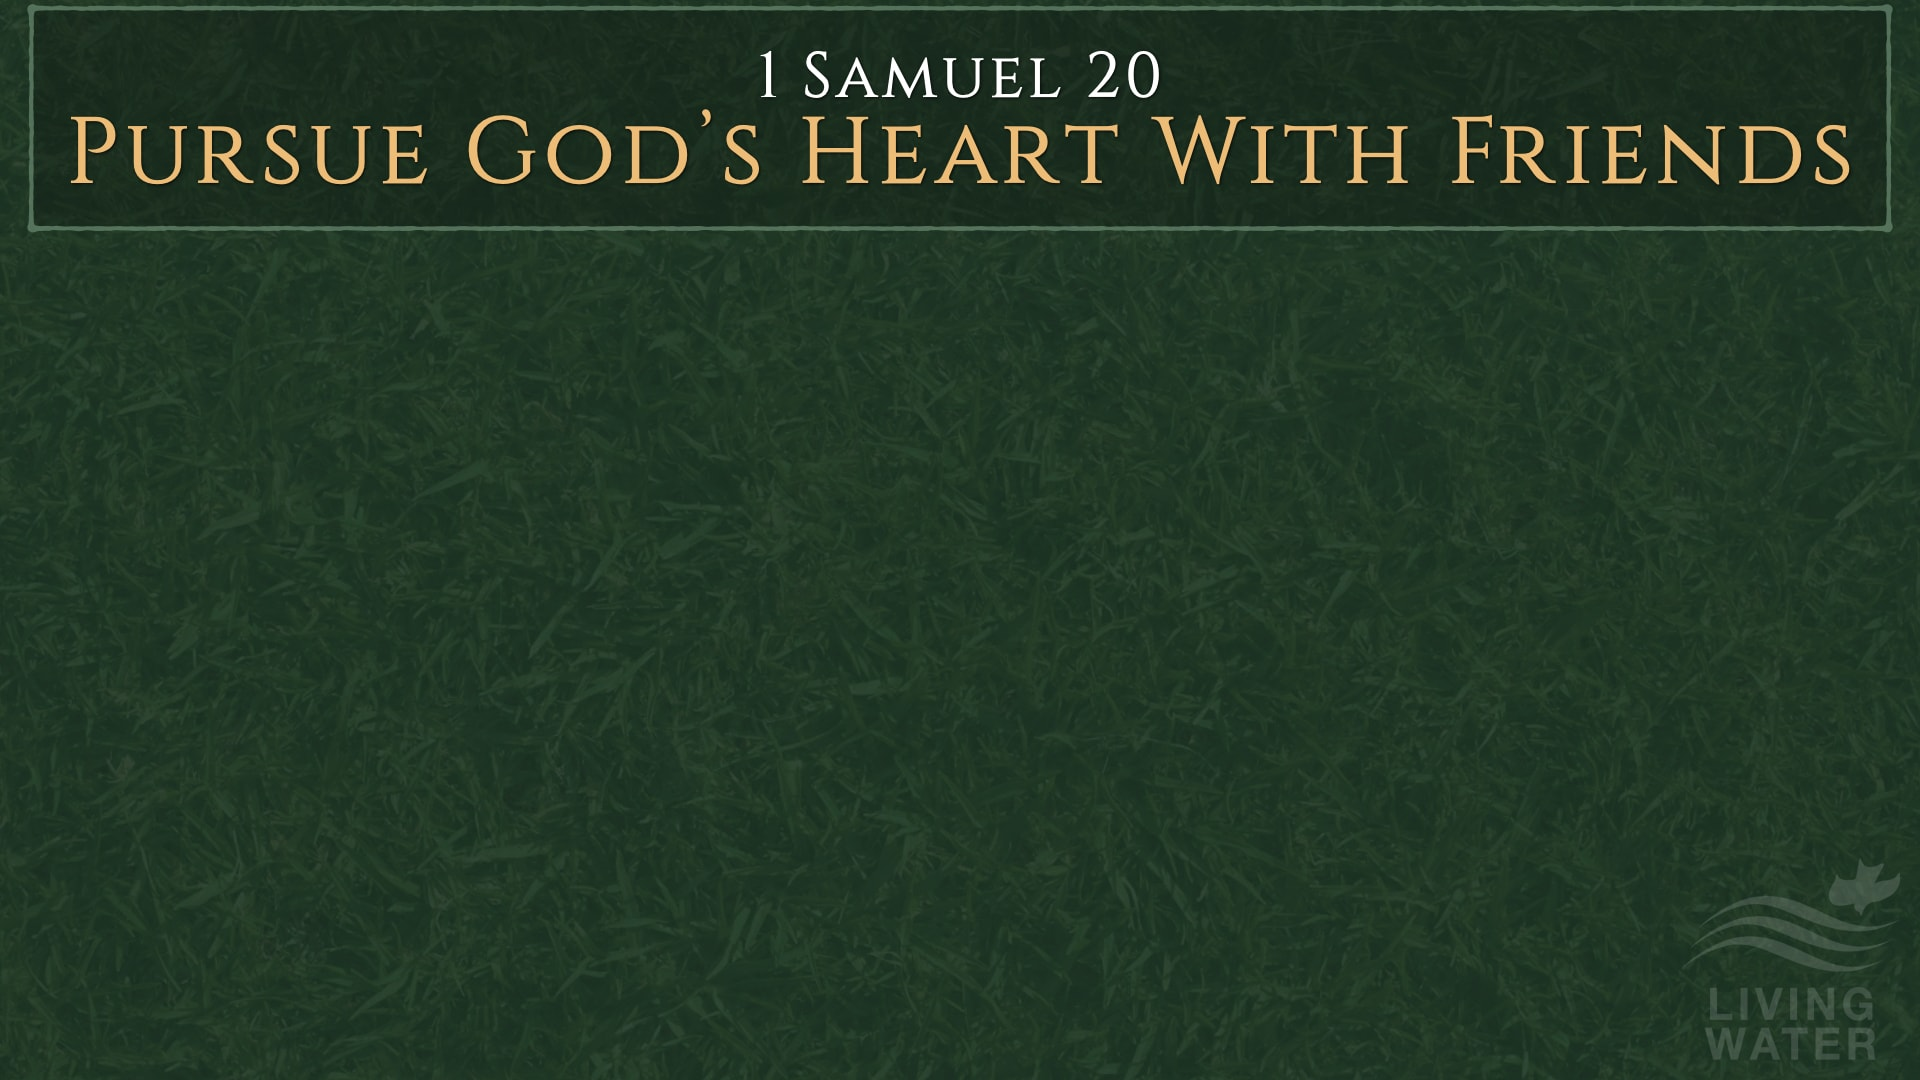 1 Samuel 20, Pursue God's Heart With Friends